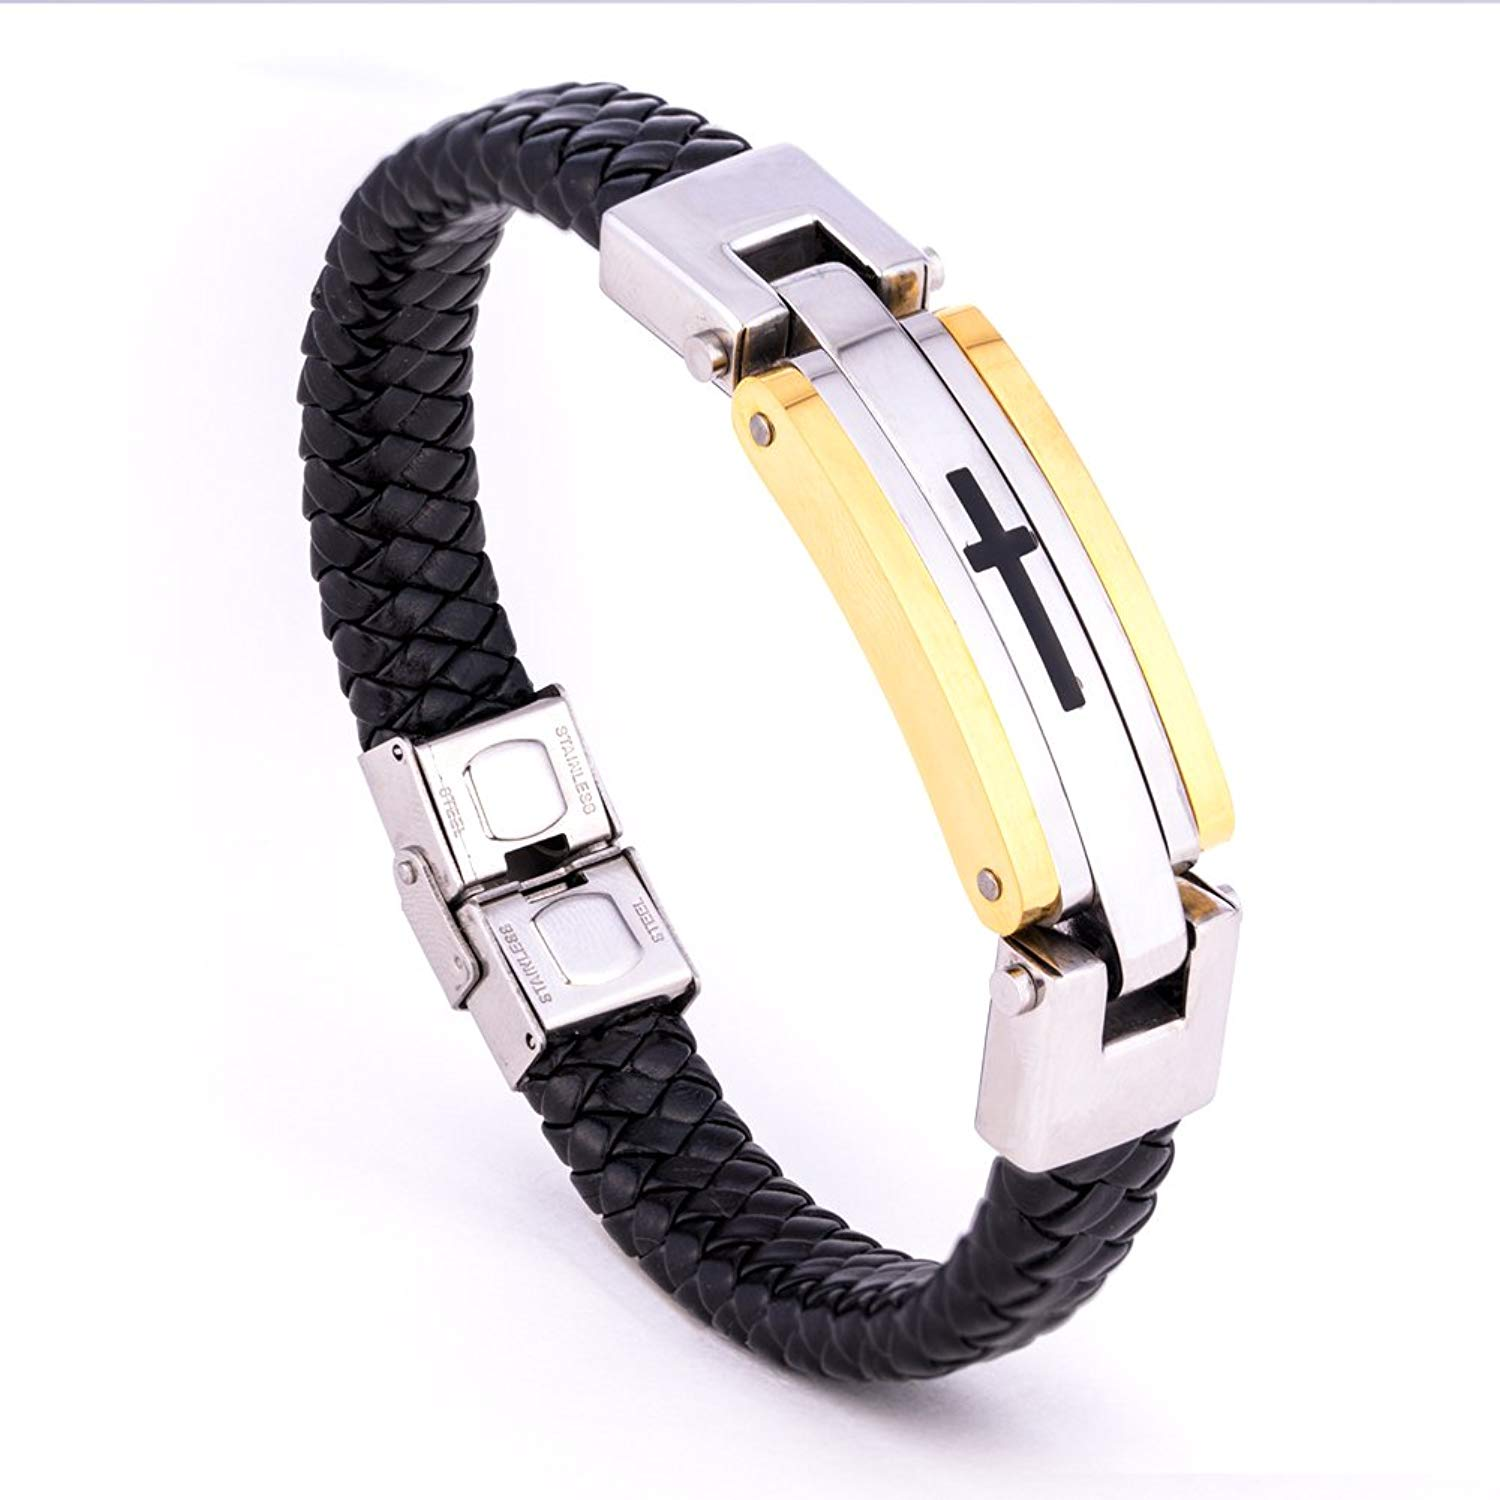 Bracelet for Men Fashion Jewelry Stainless Steel Bracelets, PU Leather /Stainless Wire Braided Hand Wrist Band, Classic Cross Cuff Bangle with Exquisite Box